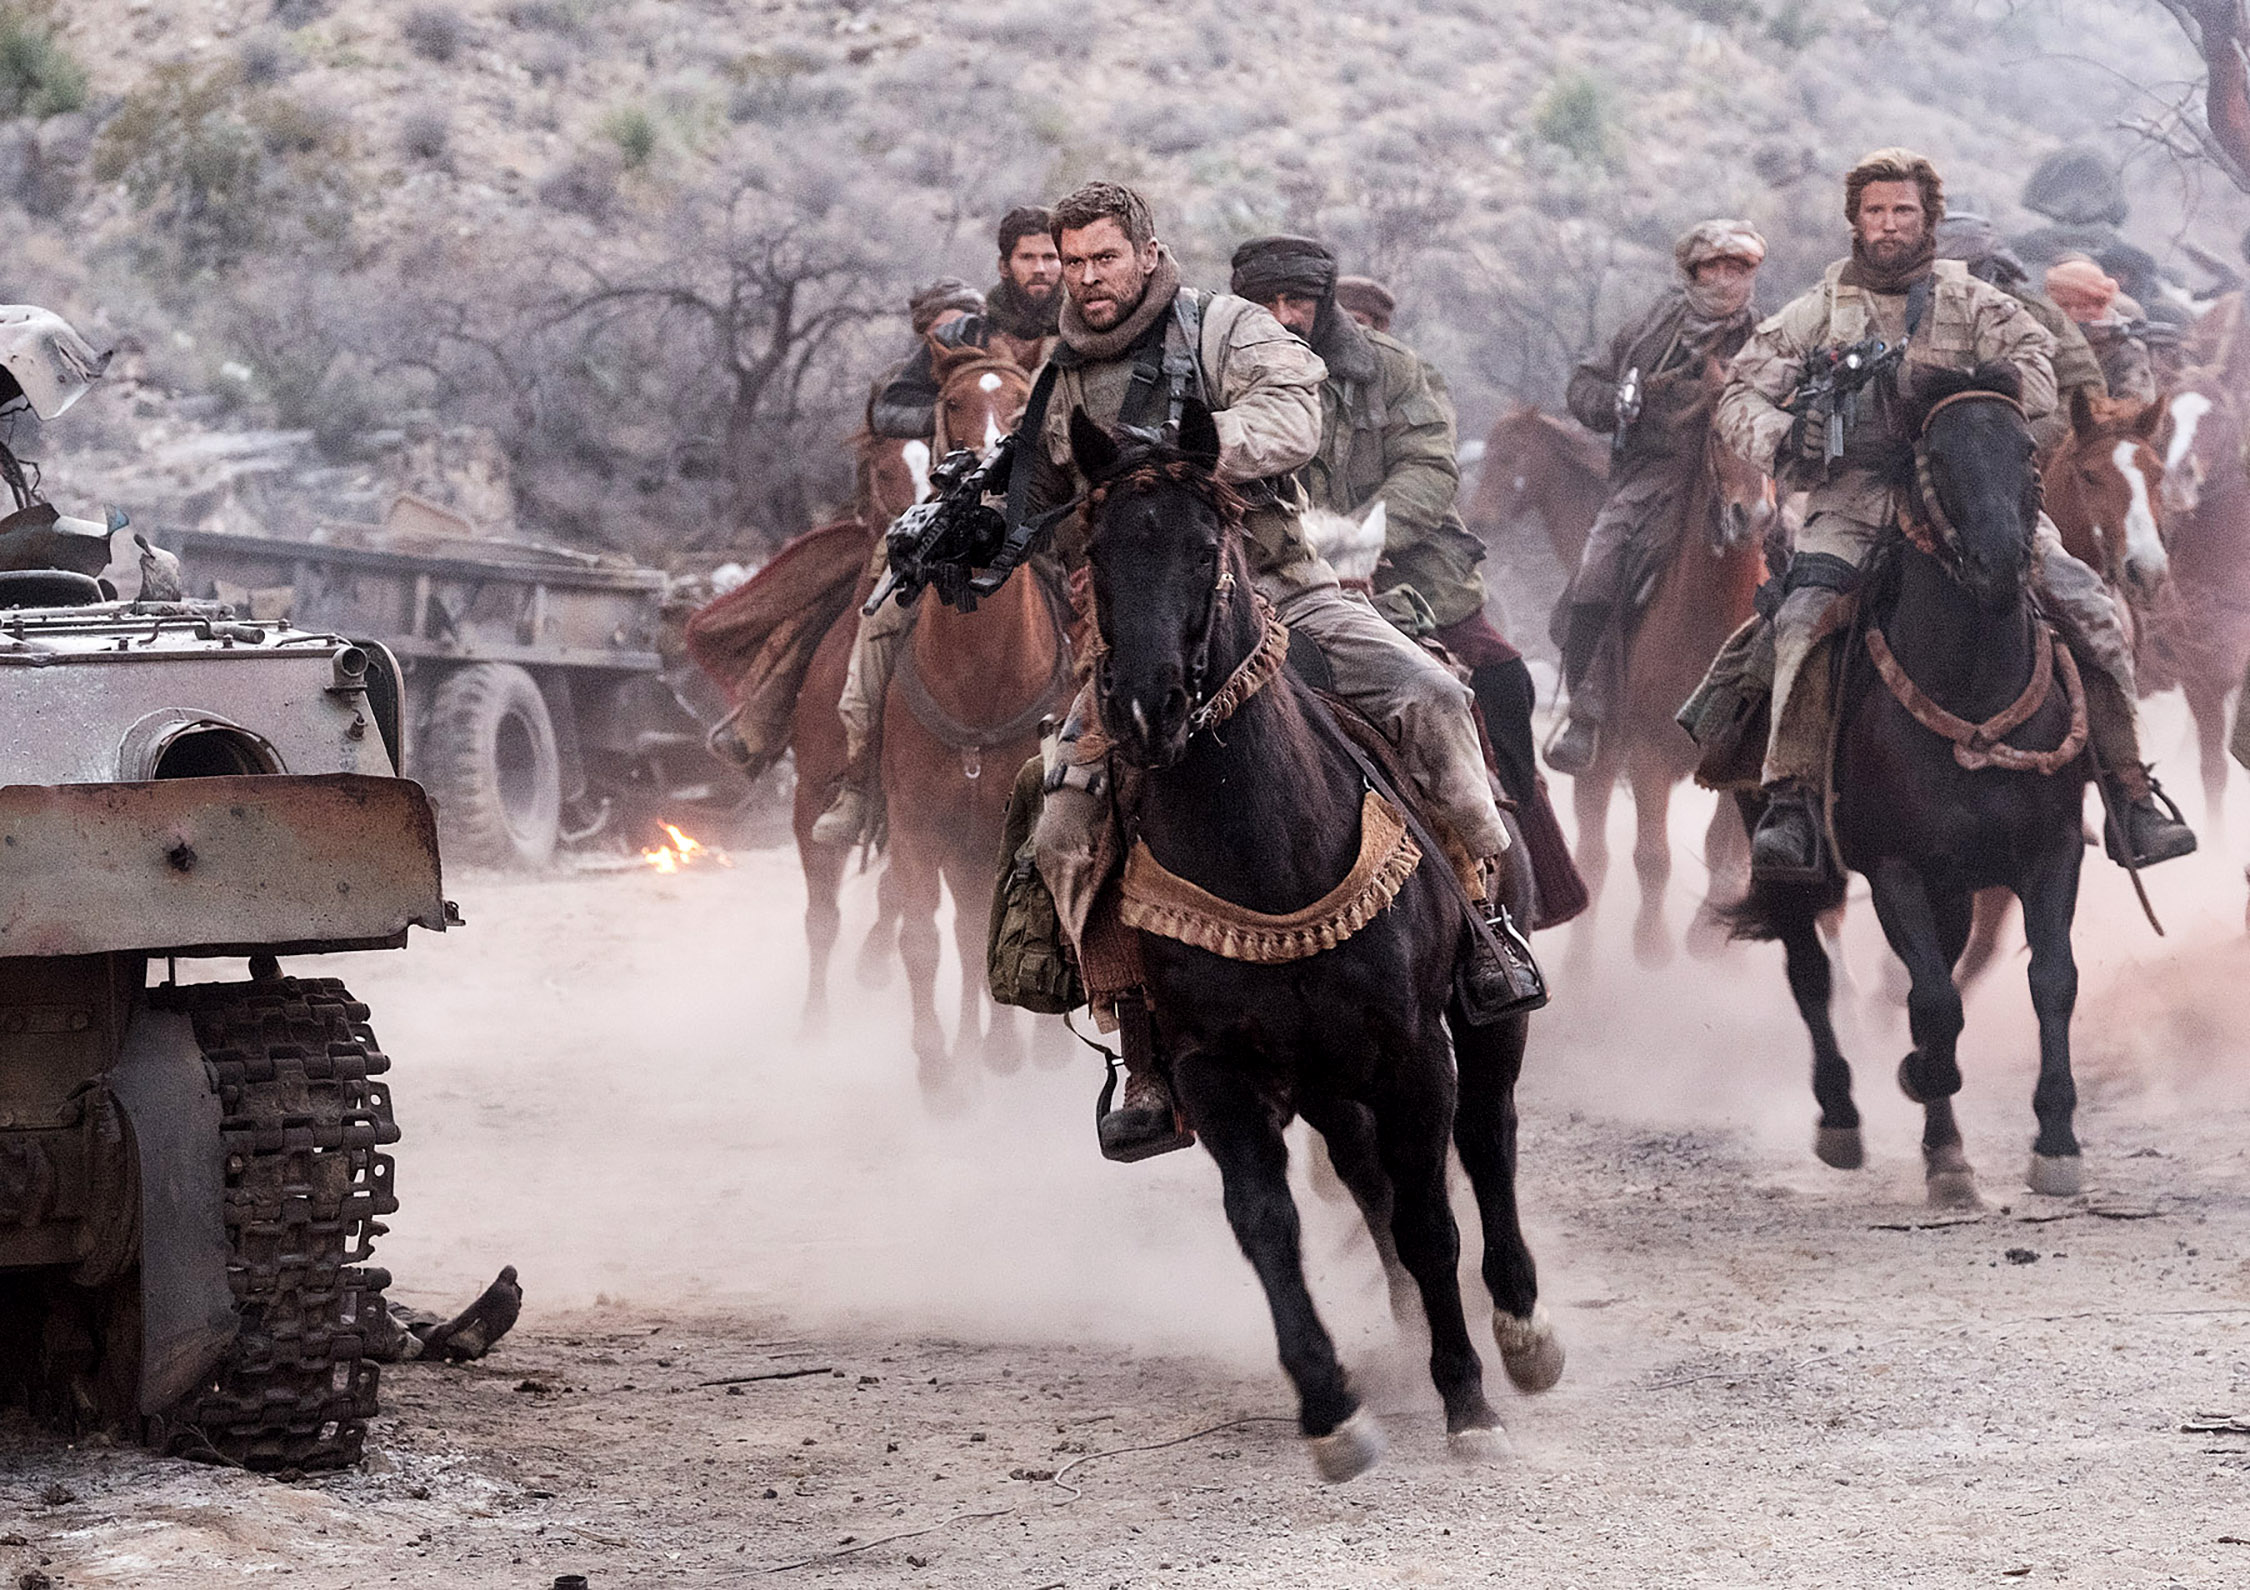 '12 Strong' – film on aftermath of 9/11 comes to India in January